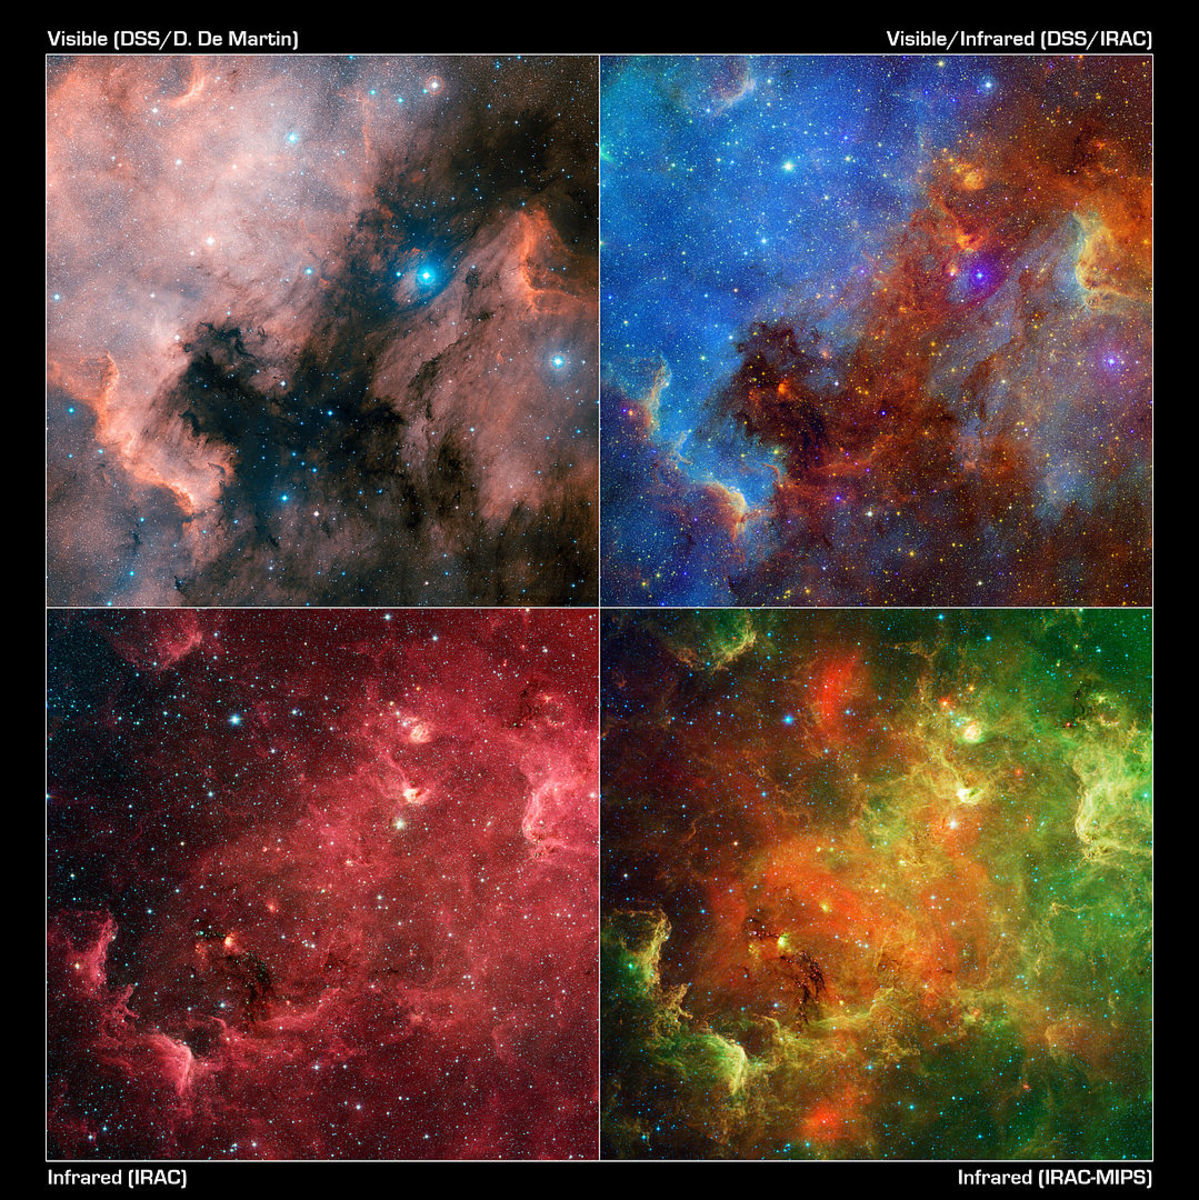 Using various combinations of infrared and visible observations from NASA's Spitzer Space Telescope and the Digitized Sky Survey, the appearance of the North American nebula drastically changes.